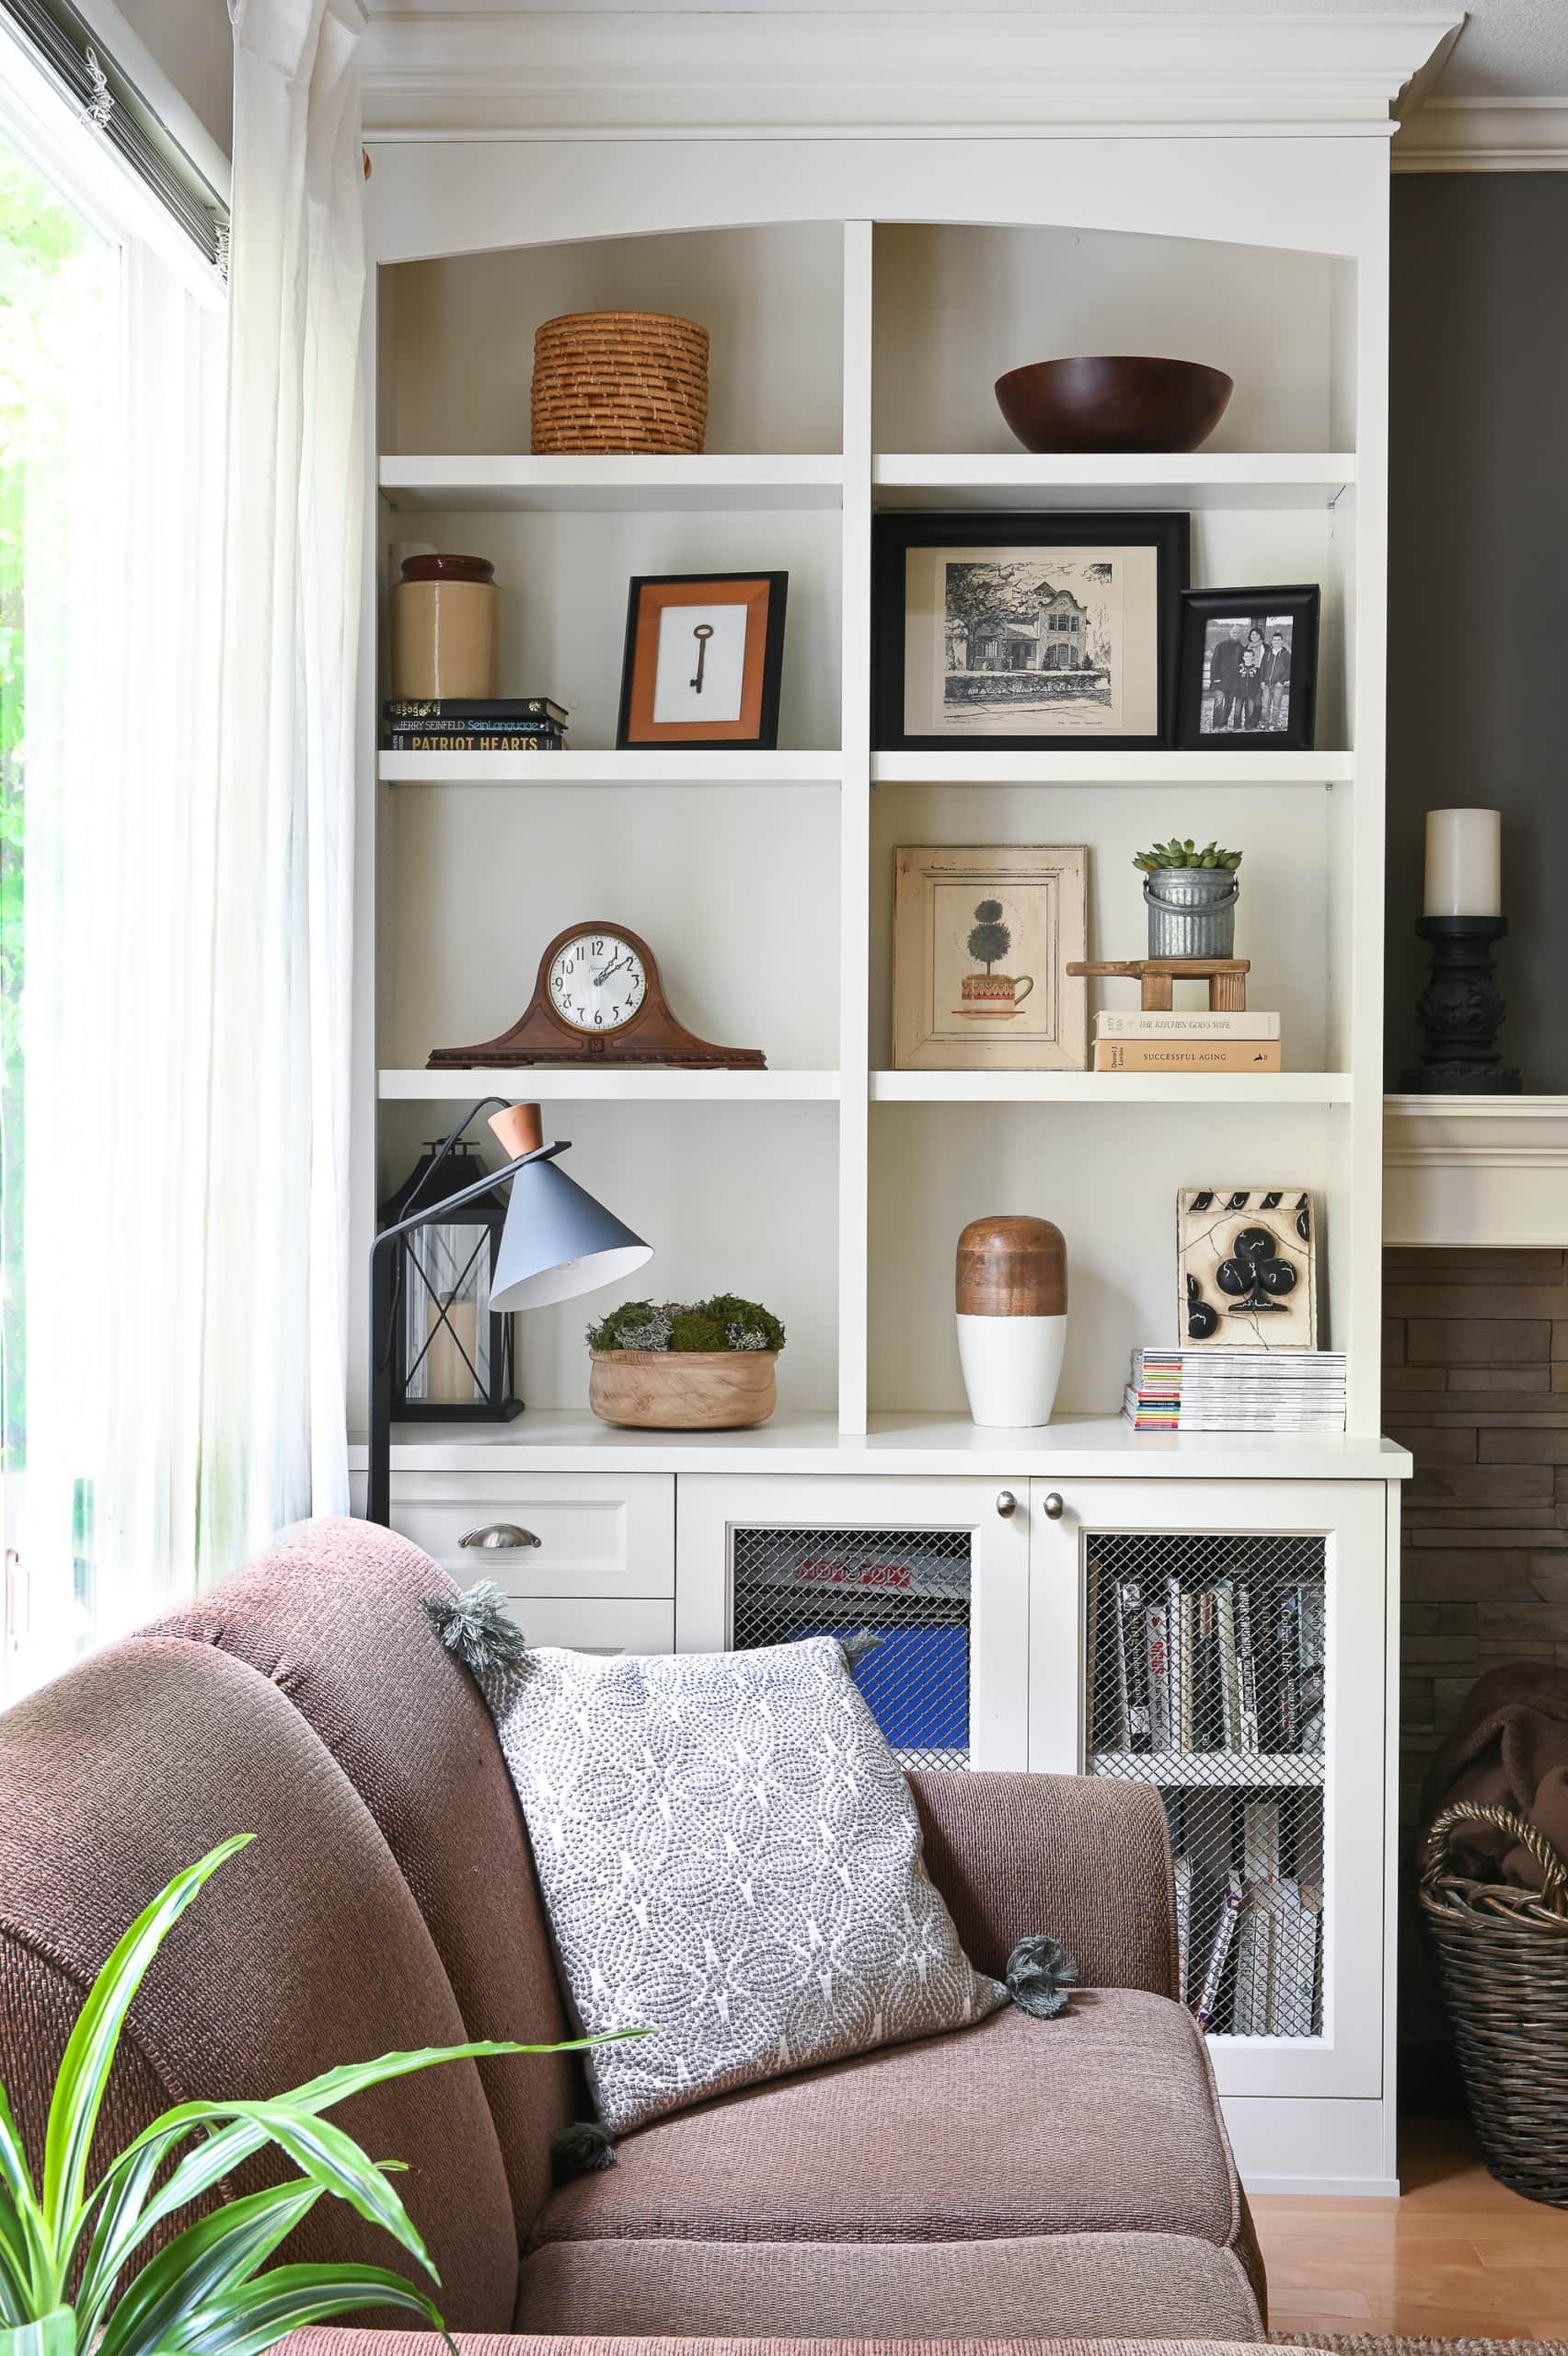 Built-ins in a family room